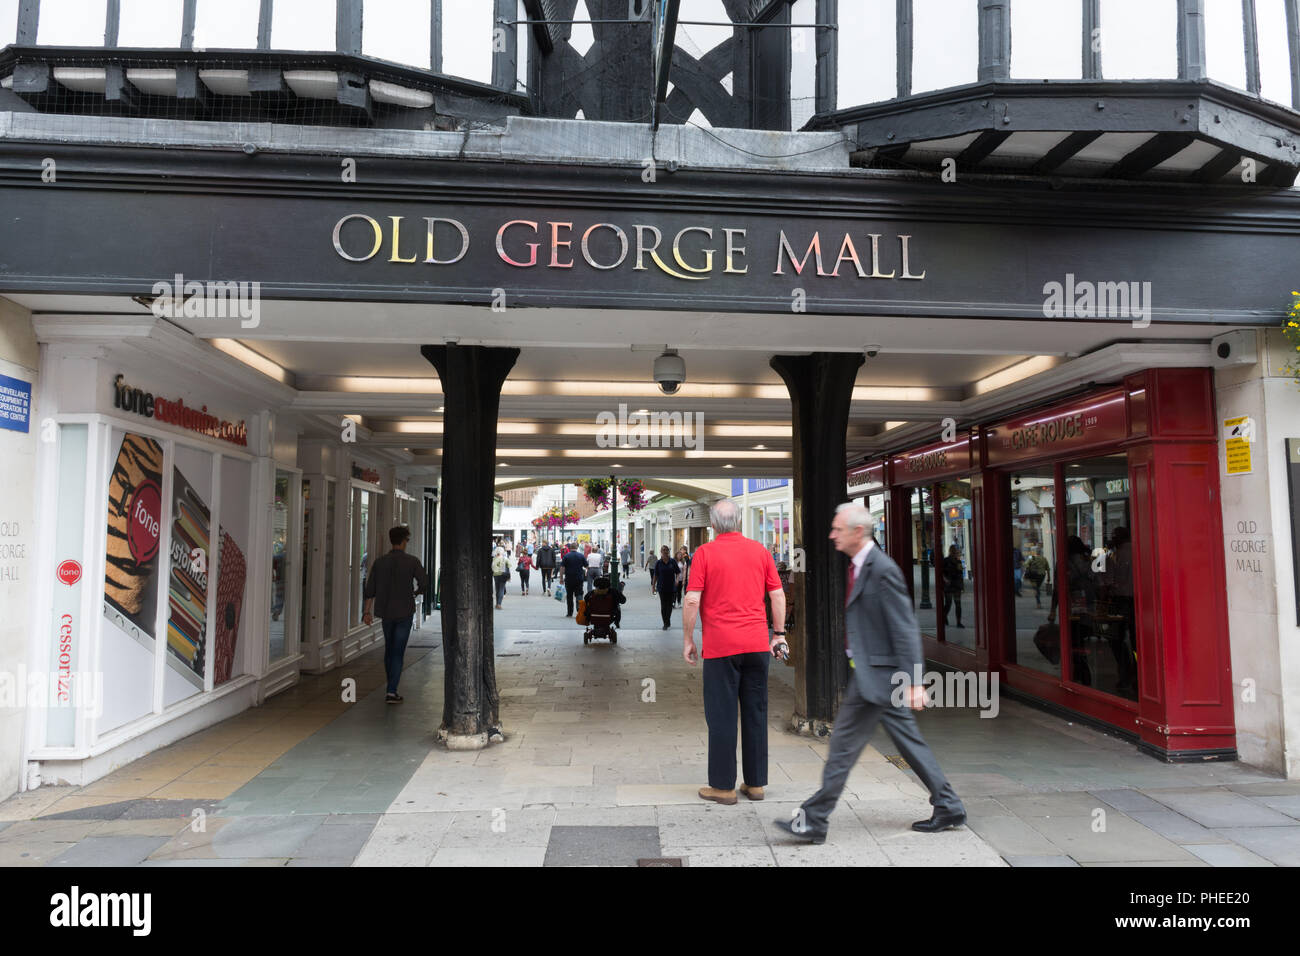 Entrance to Old George Mall shopping centre off of the High Street in Salisbury, Wiltshire, UKStock Photo